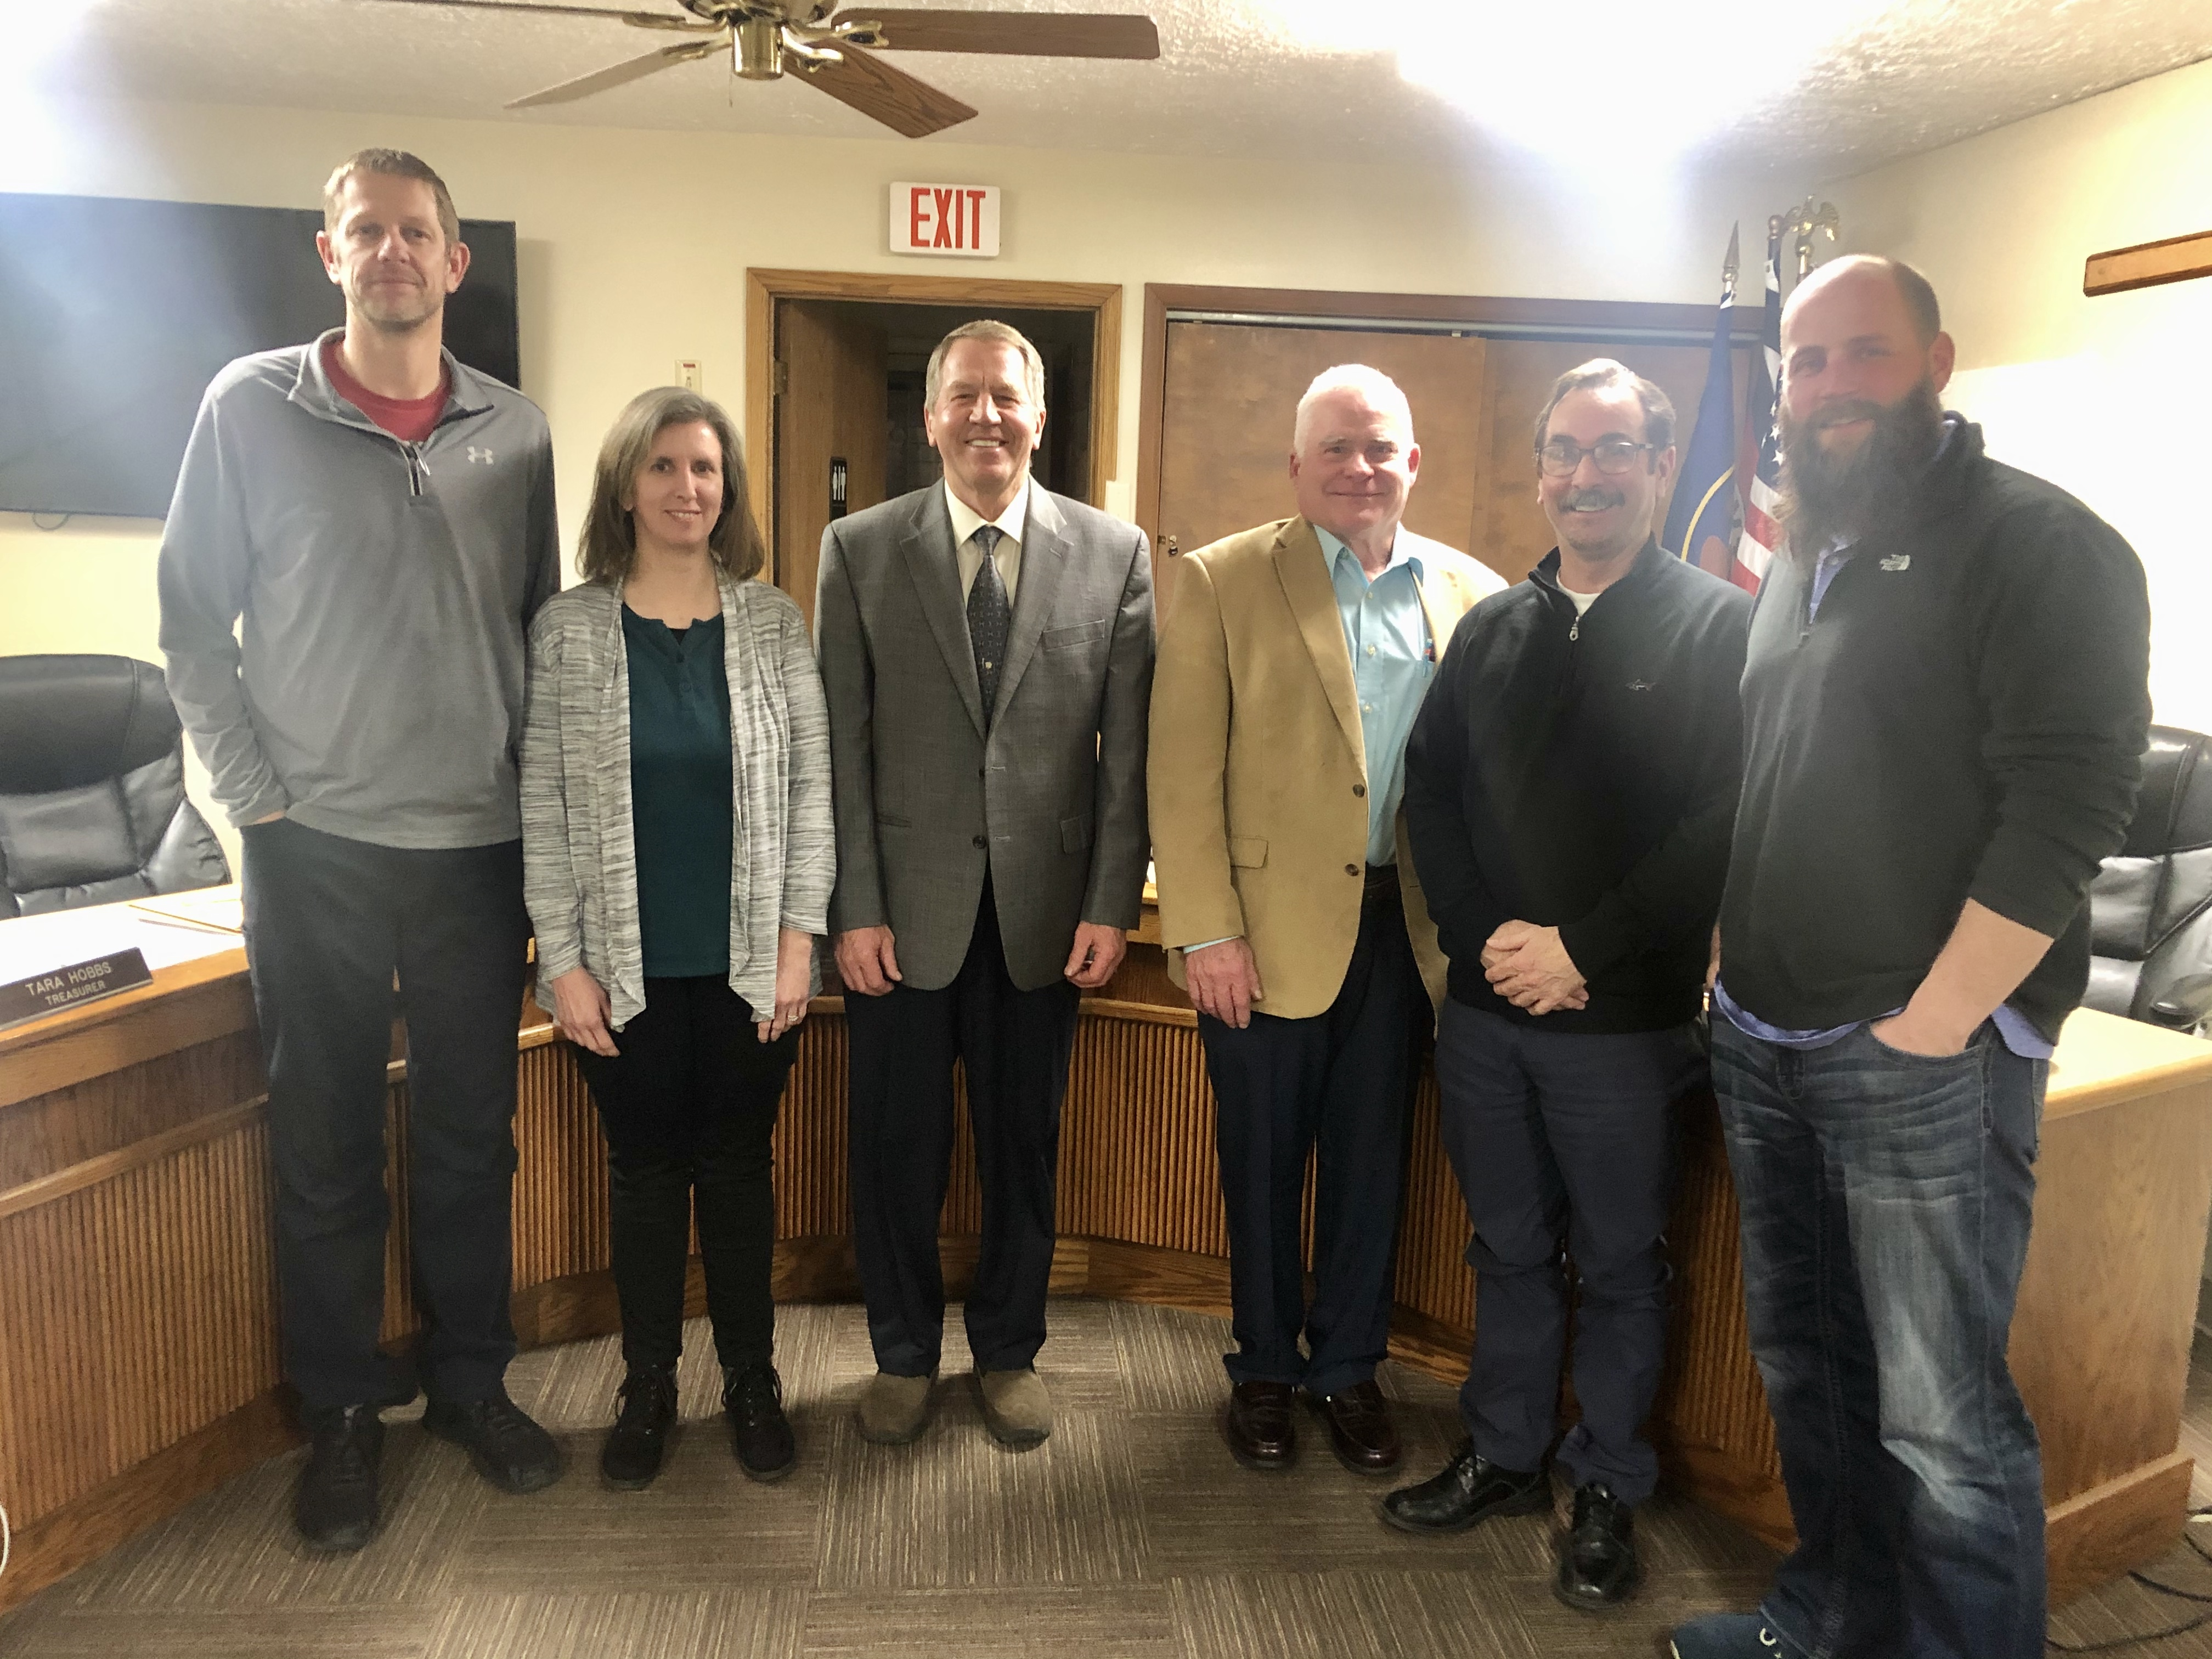 From left to right: Councilmember Zollinger, Councilmember June, Mayor Hair, Councilmember Callahan, Councilmember Wilker, Councilmember Grange